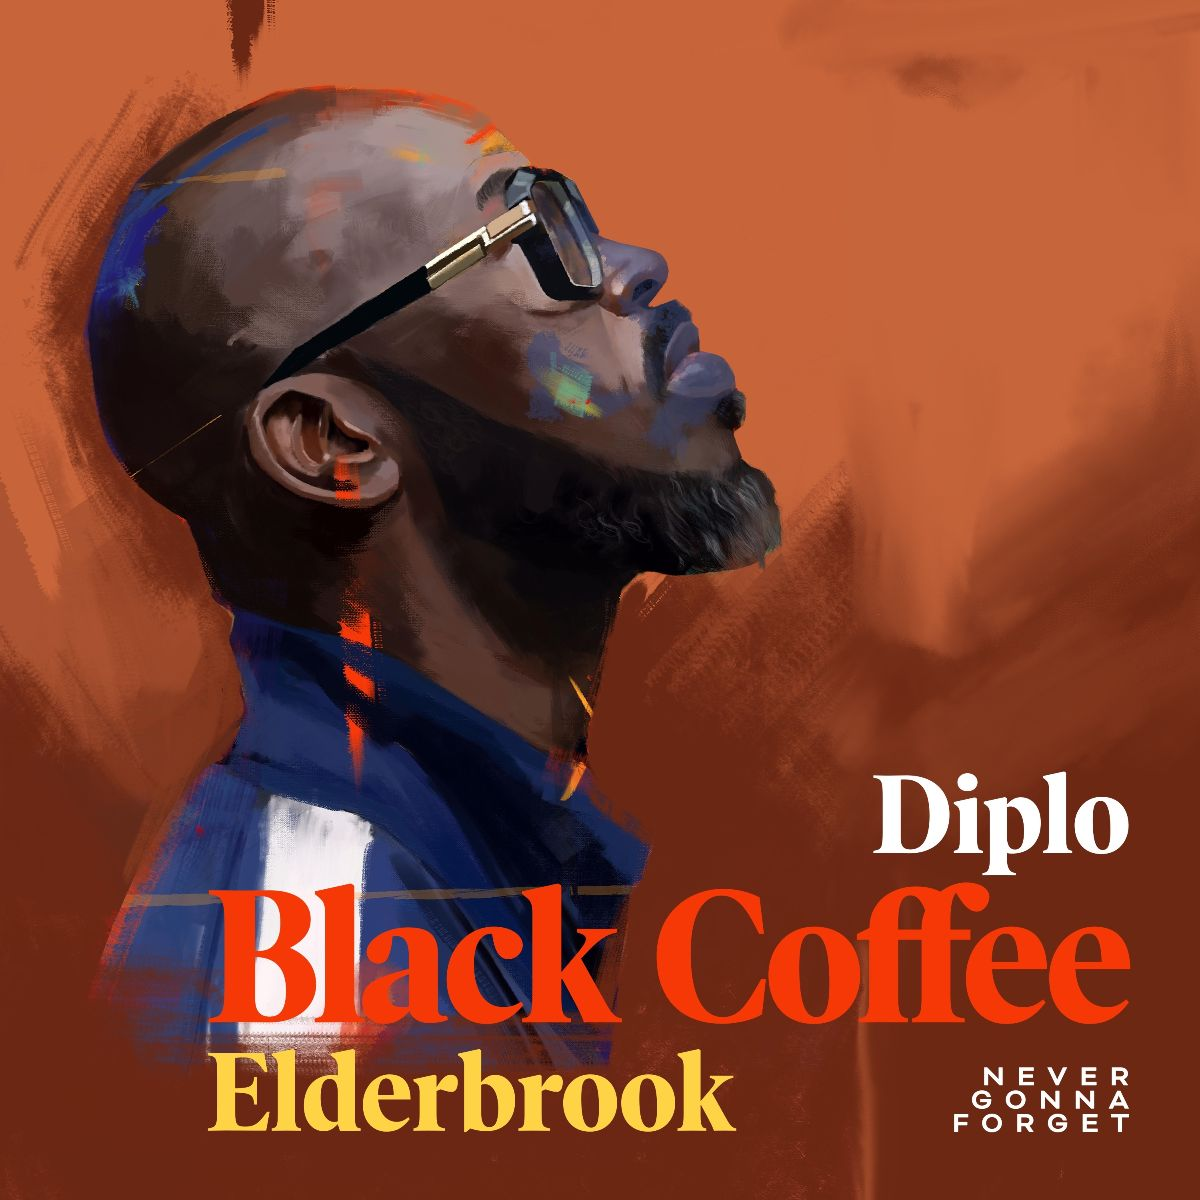 Black Coffee, Diplo and Elderbook collaborate on a new single 'Never Gonna Forget'!